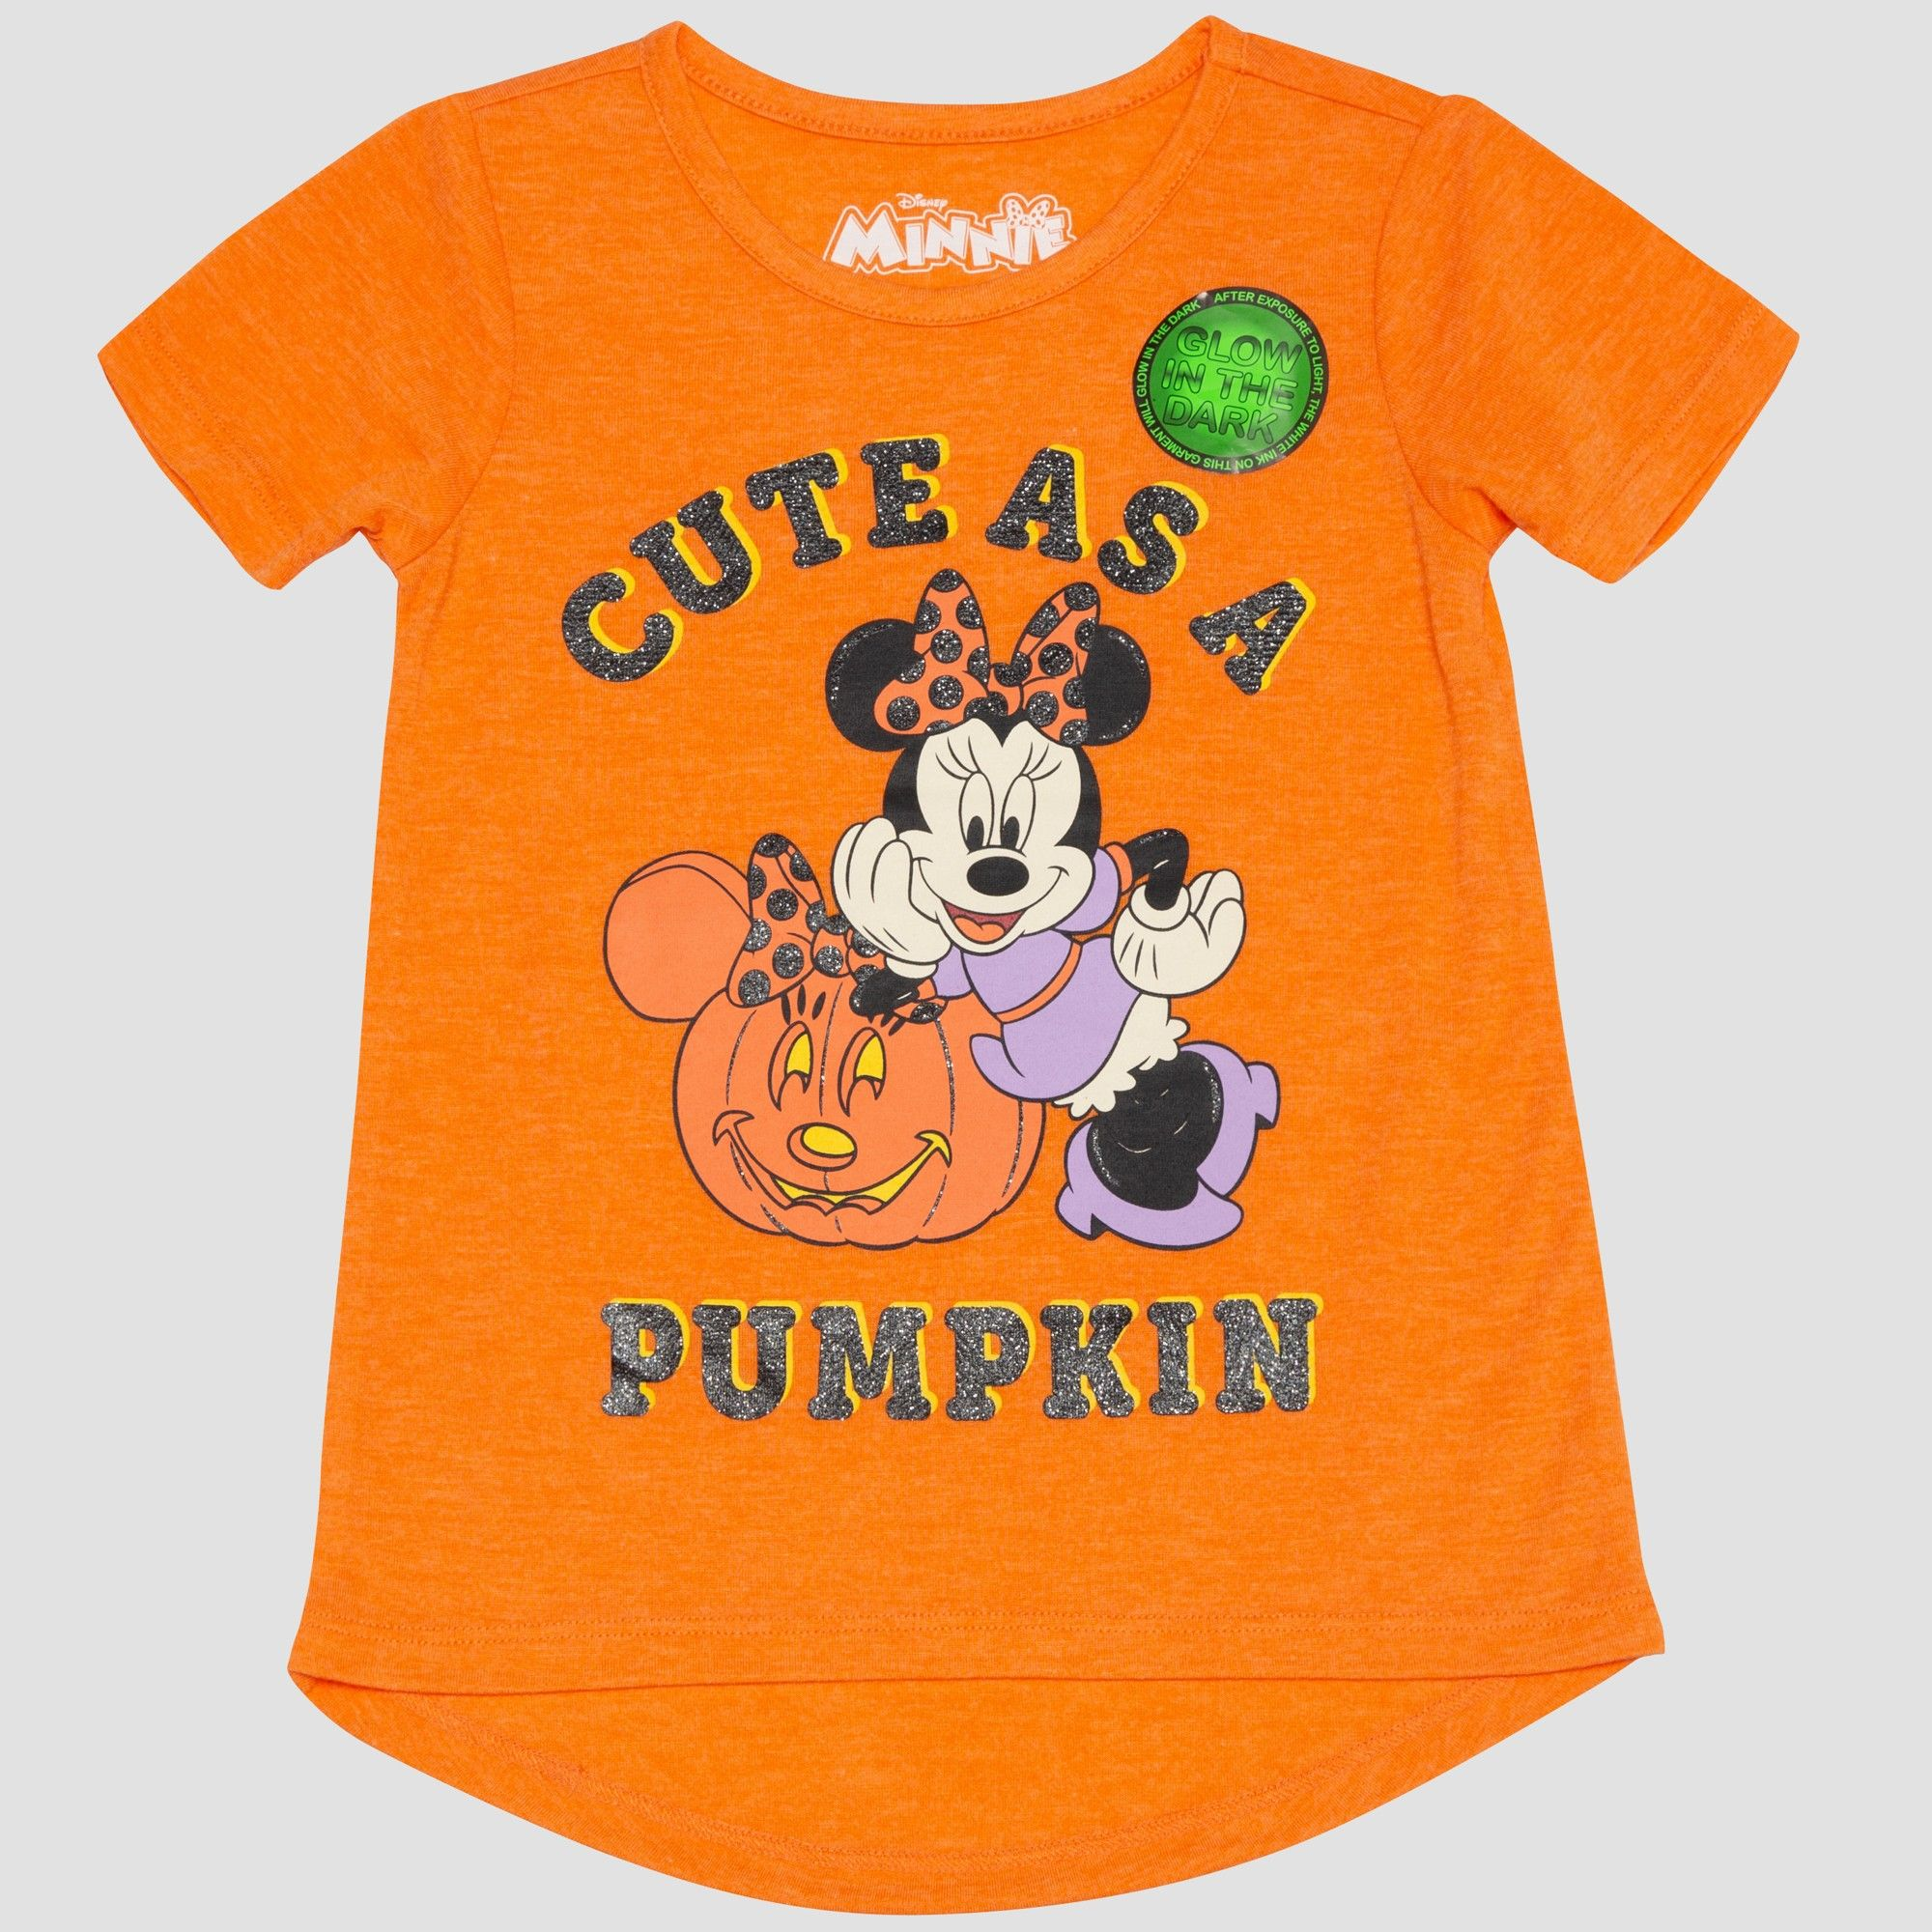 6212f0471 Toddler Girls' Mickey Mouse & Friends Minnie Mouse Short Sleeve T-Shirt -  Orange 12M